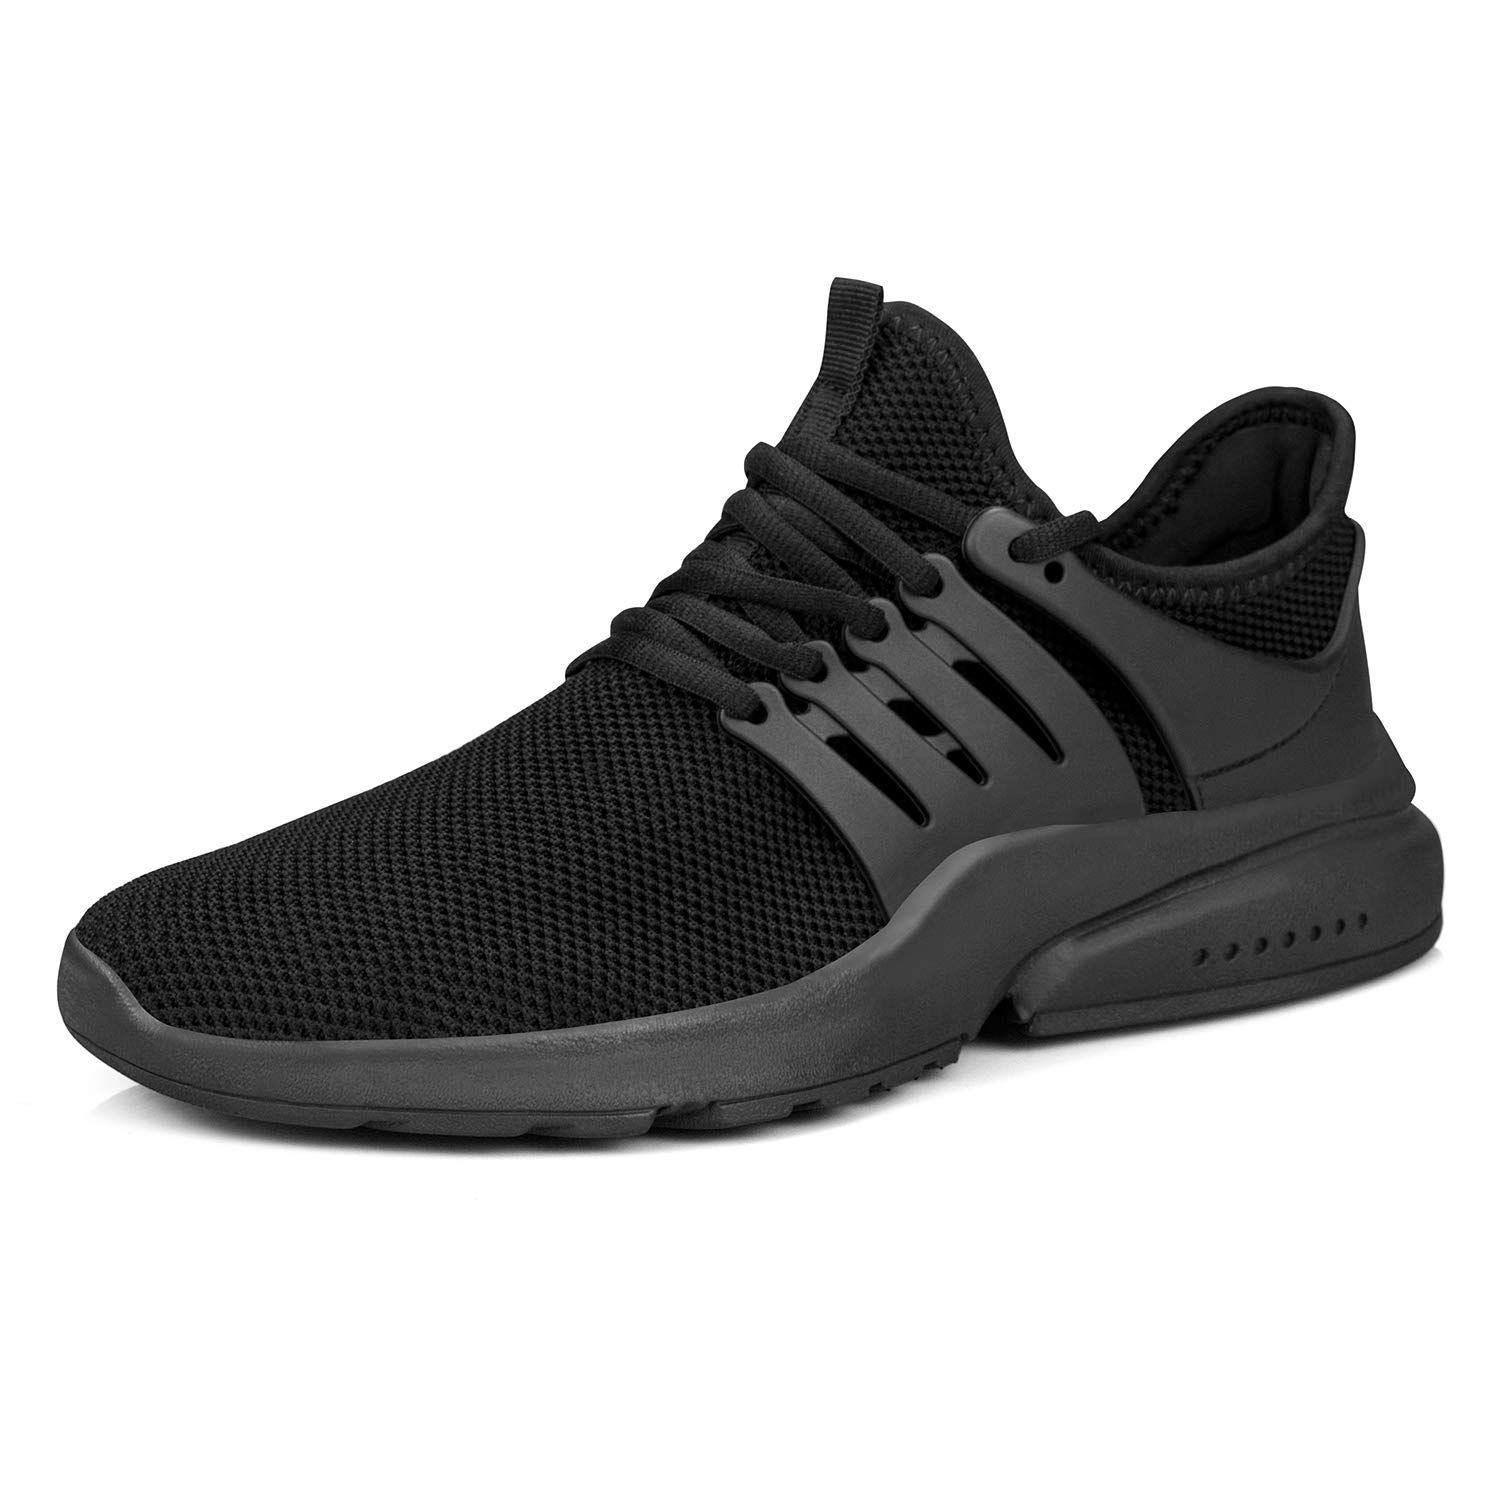 QANSI Tennis Shoes for Women Mesh Gym Running Casual Sneakers Black Size 8